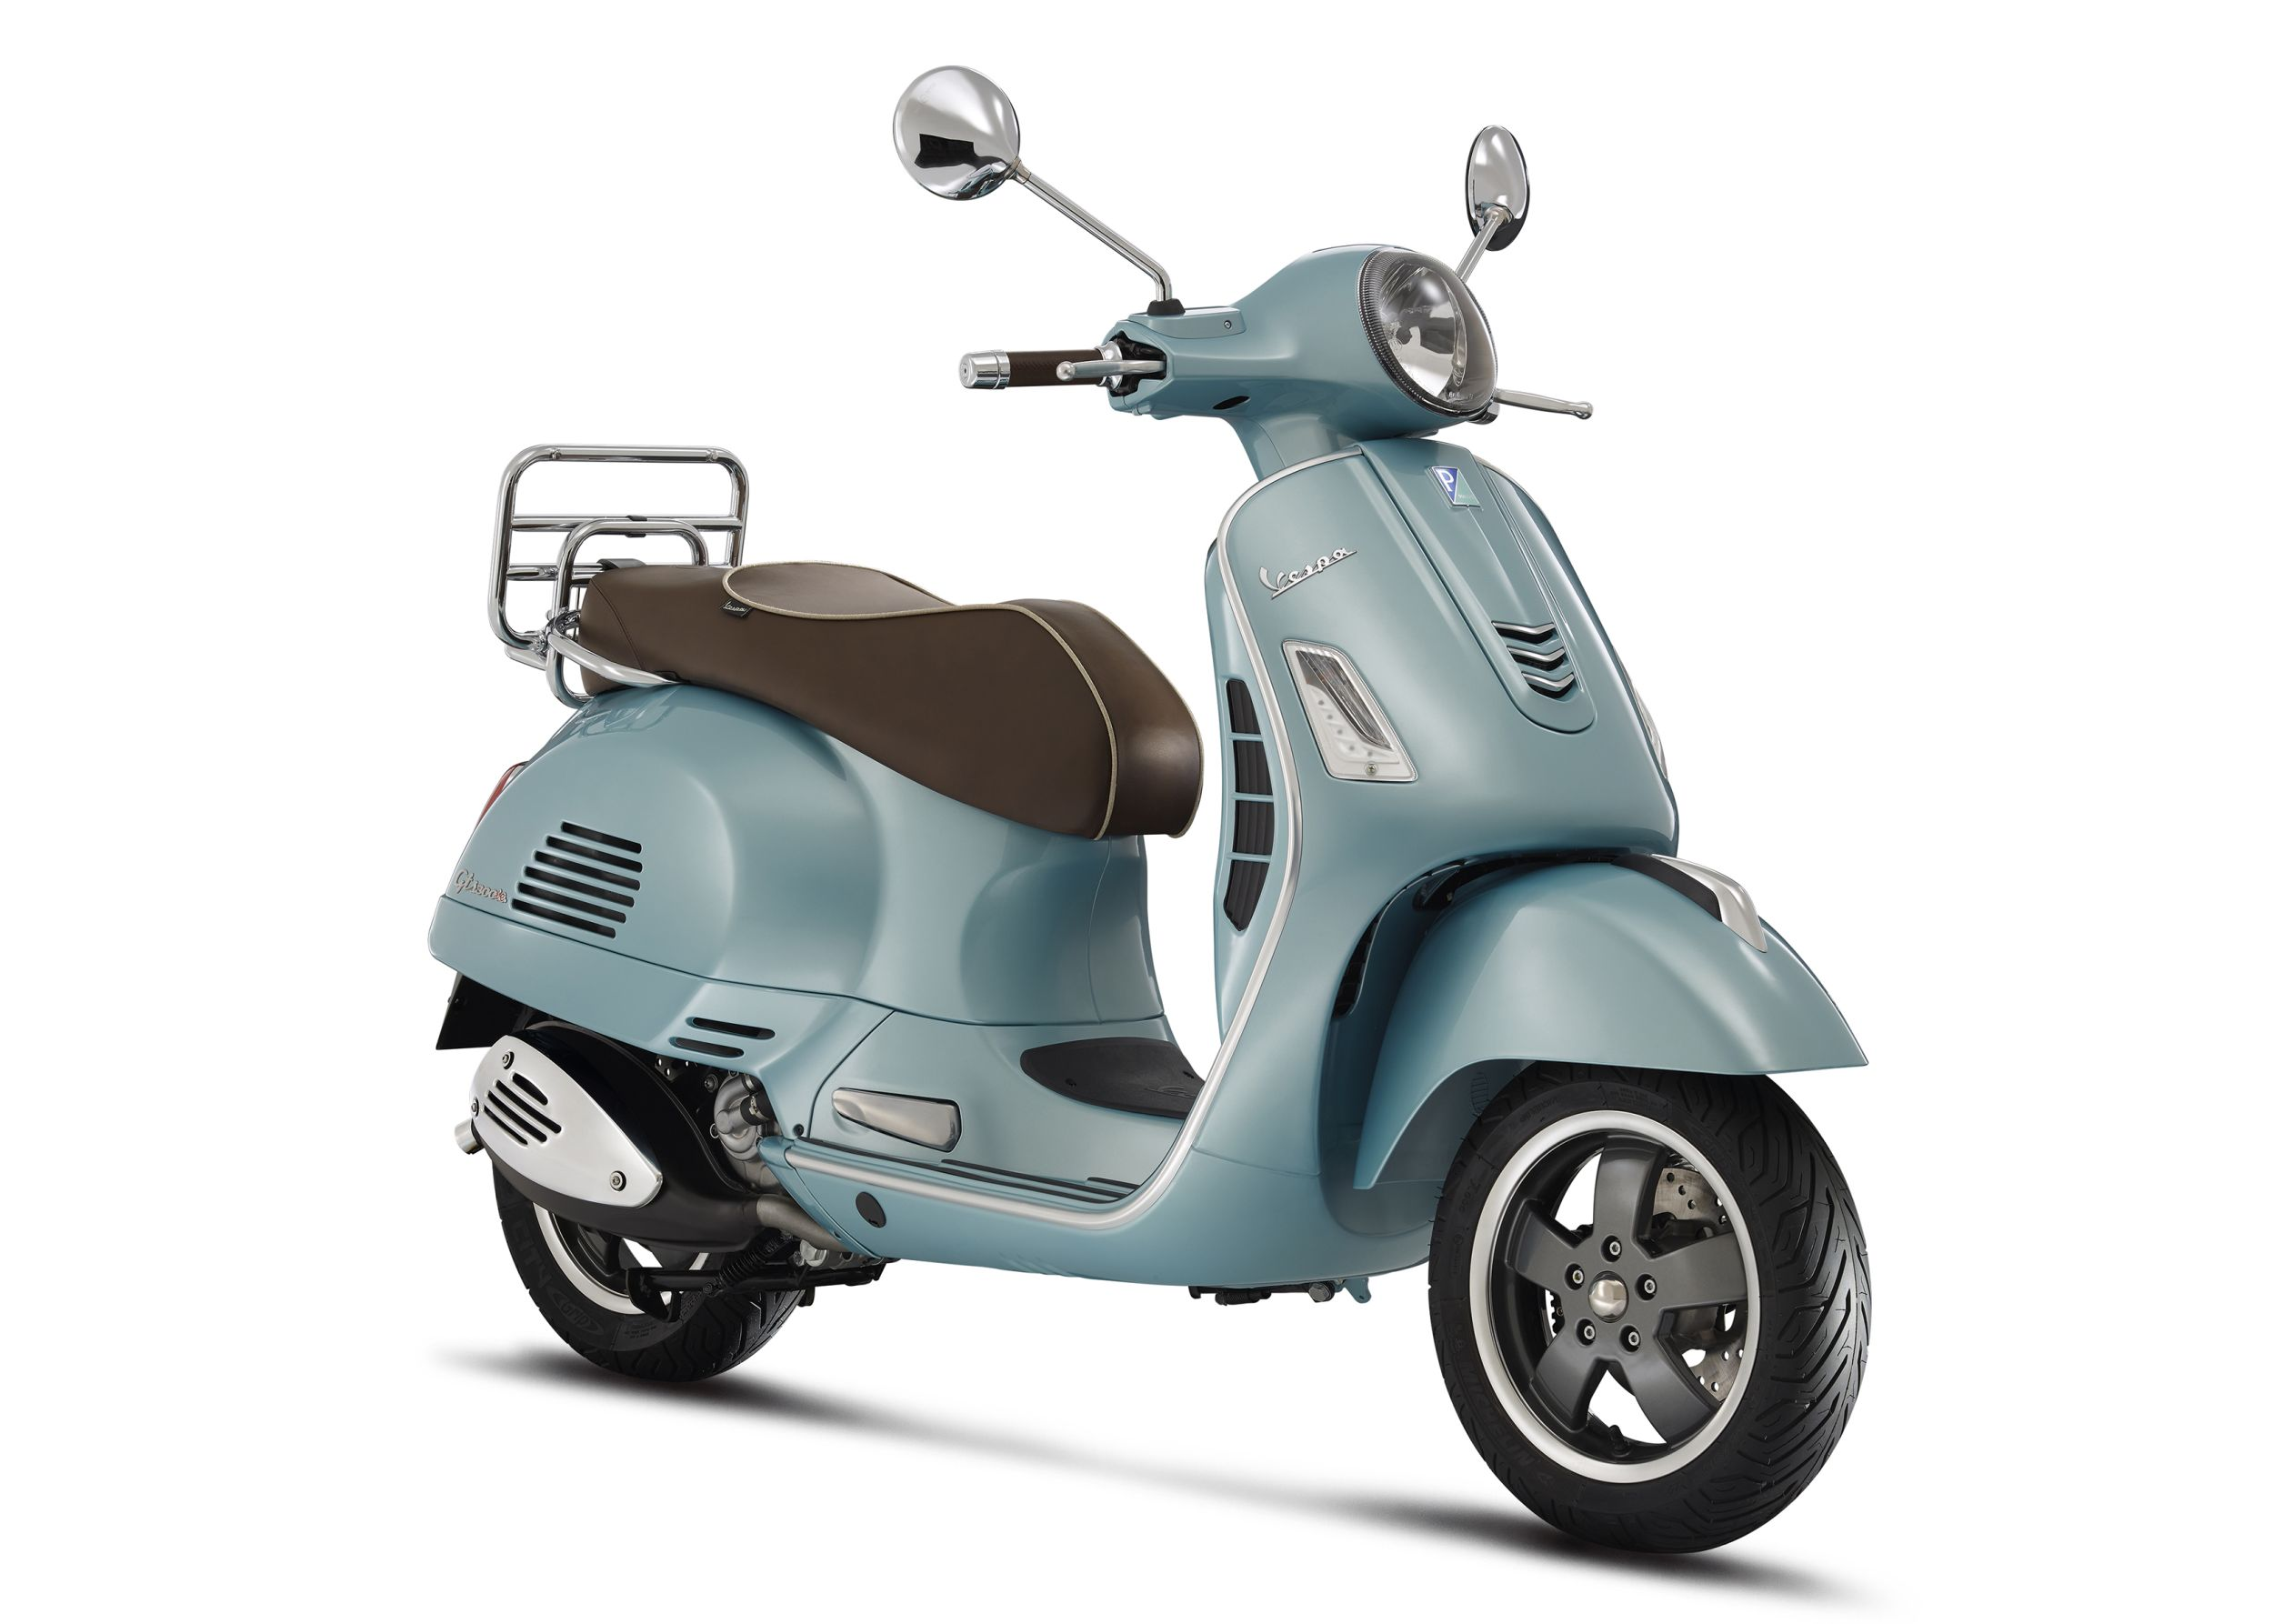 vespa gts 300 i e 70 anniversary all technical data of the model gts 300 i e 70. Black Bedroom Furniture Sets. Home Design Ideas